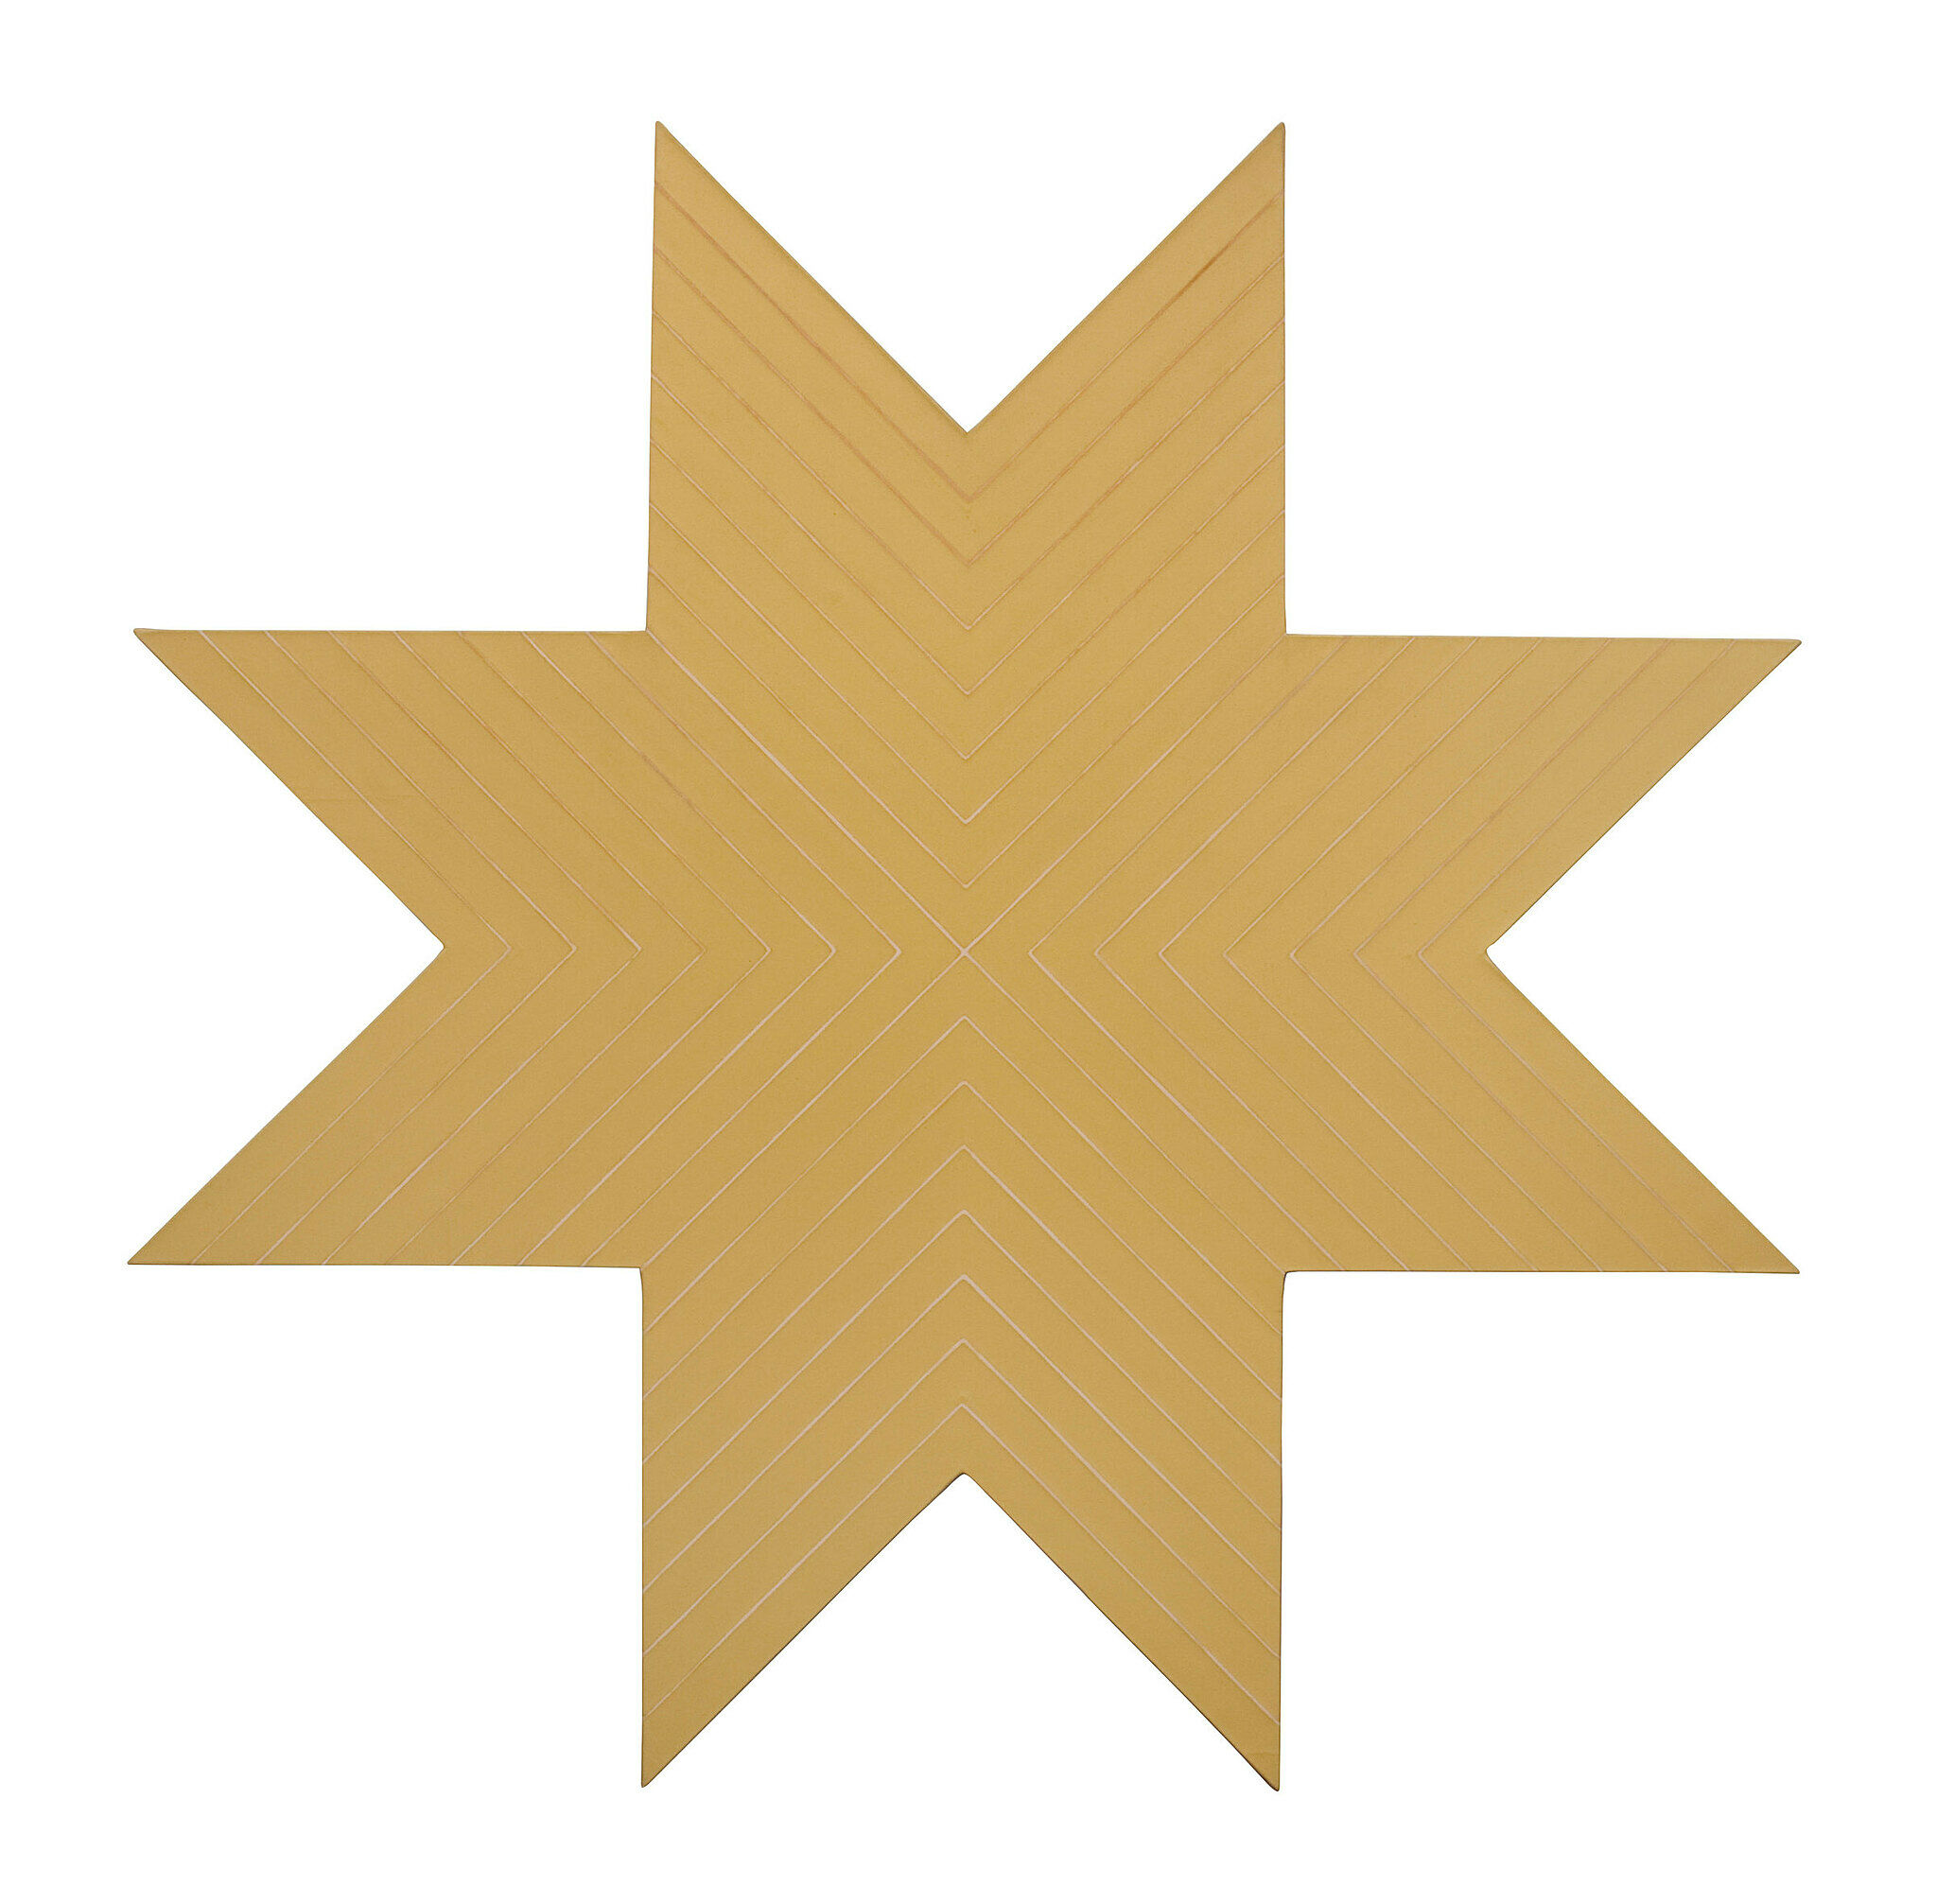 A golden star shape on a white background.